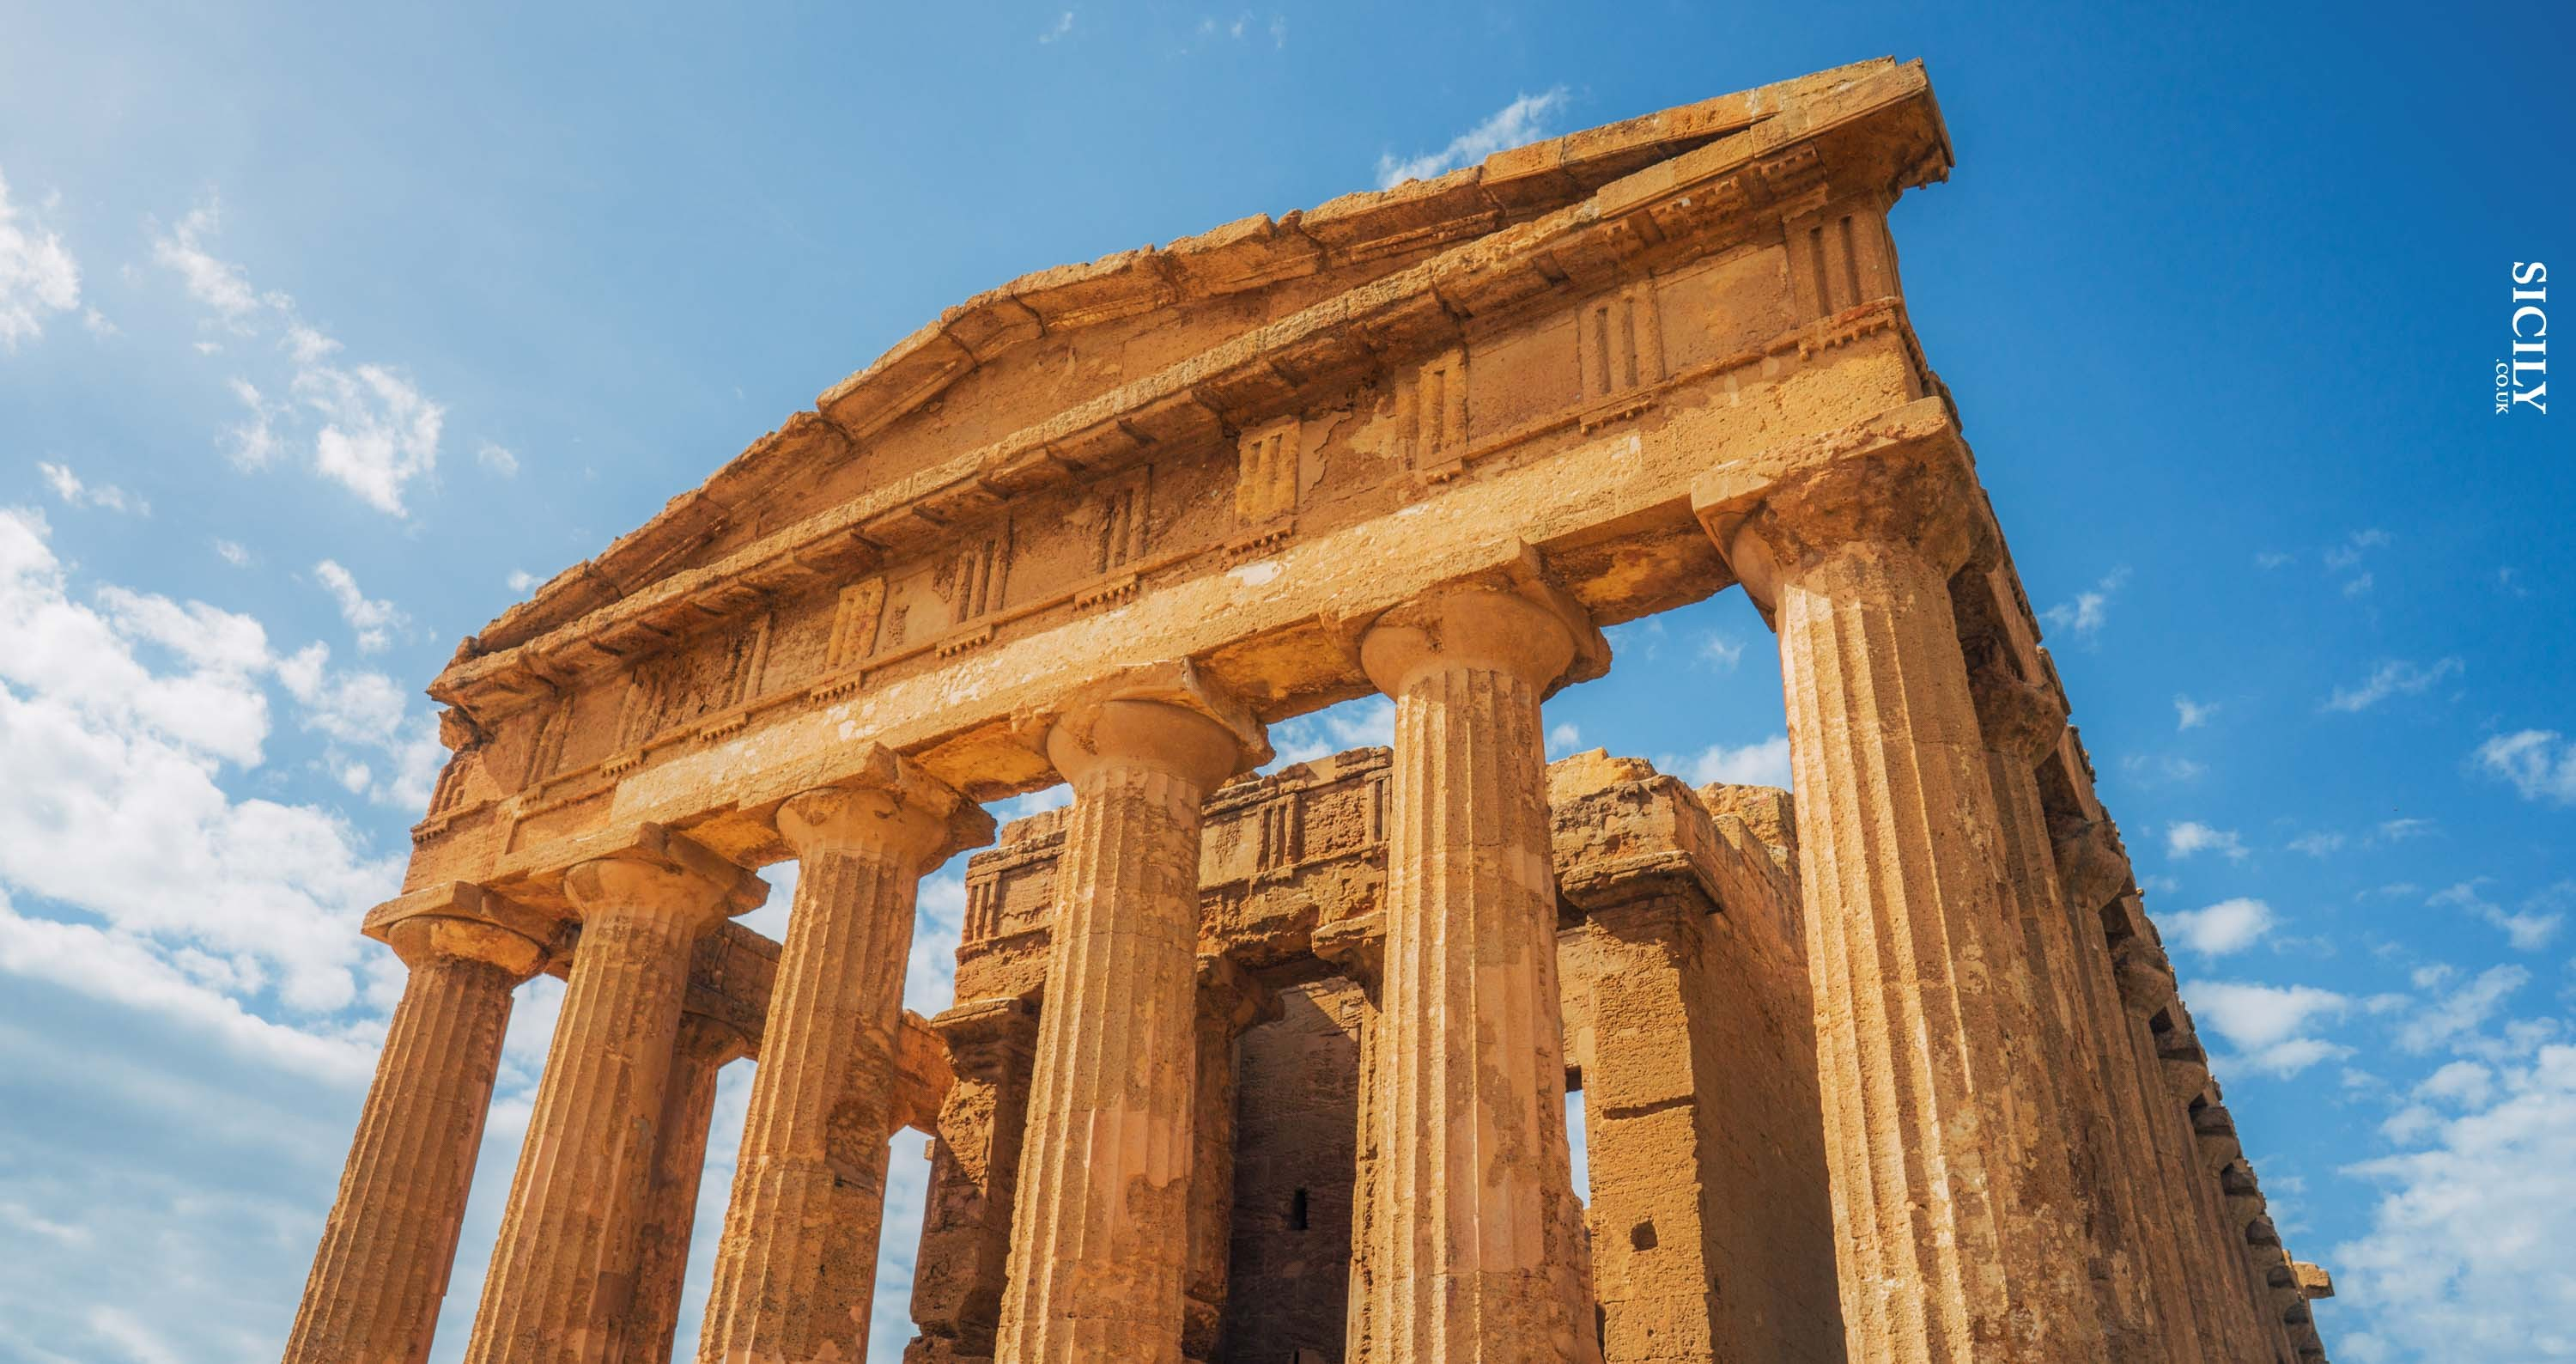 agrigento dating site The valley of the temples (valle dei templi) is an ancient archaeological site situated in close proximity to agrigento on the south coast of sicily set on a plateau overlooking the.